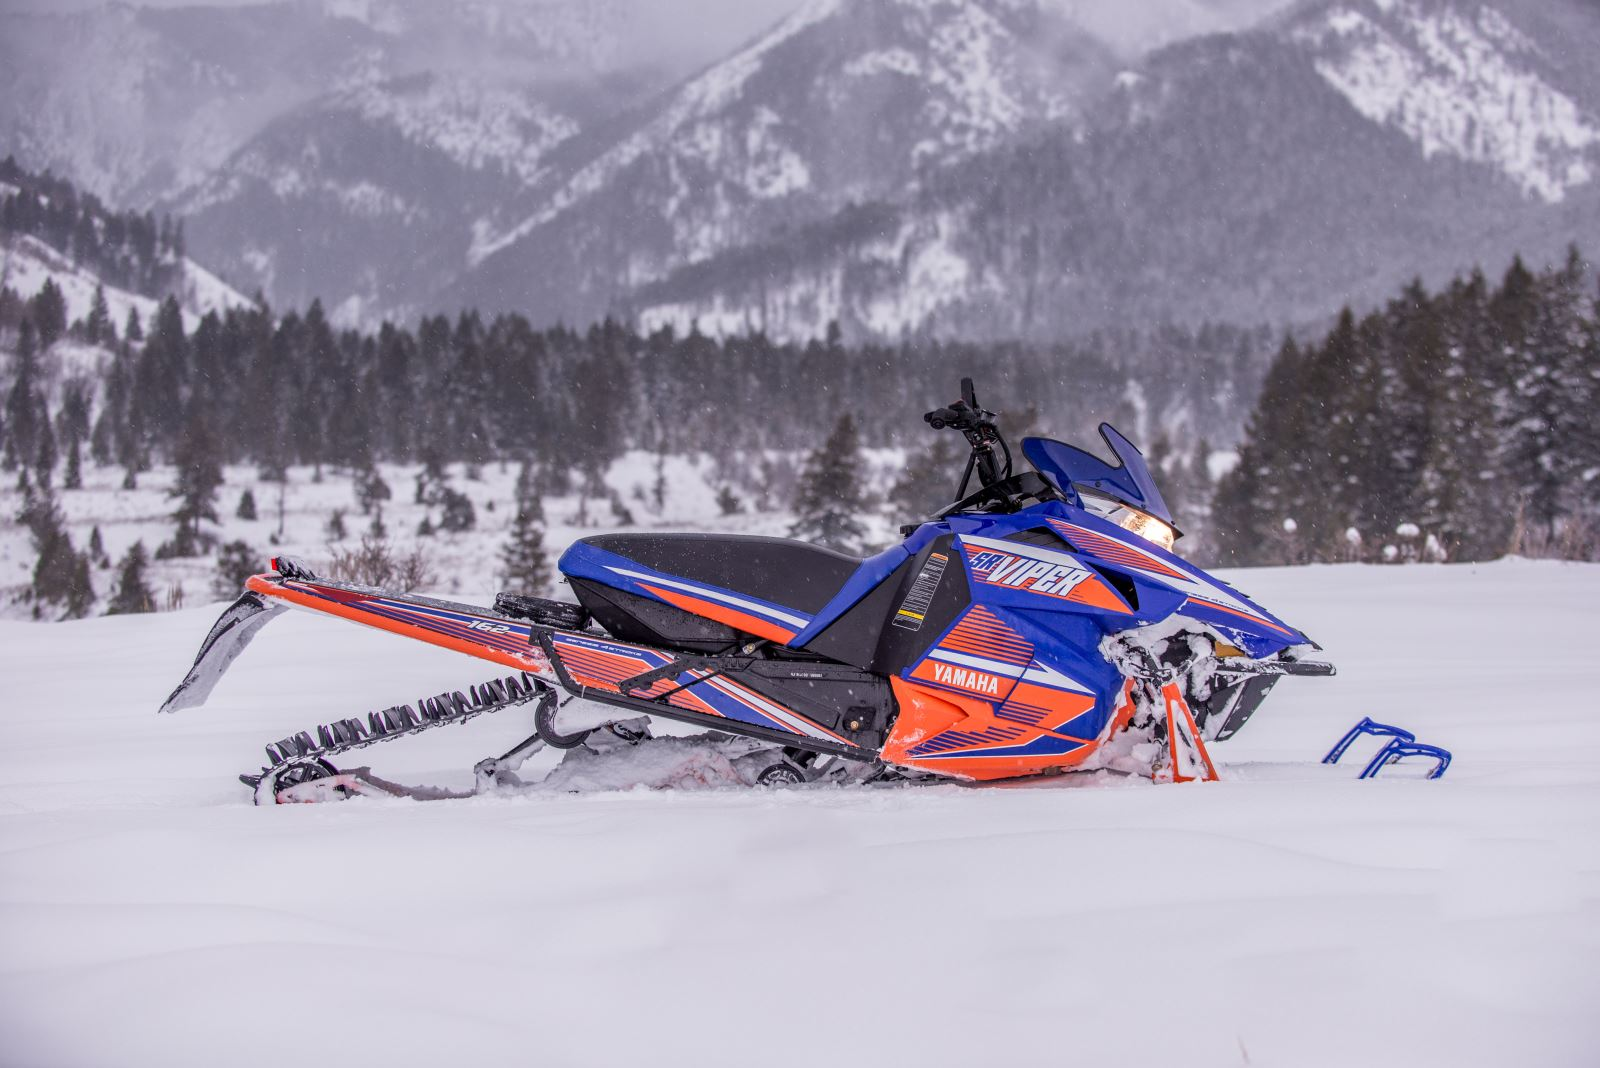 First look 2015 yamaha sr viper mtx mountain sleds for Yamaha snow mobiles